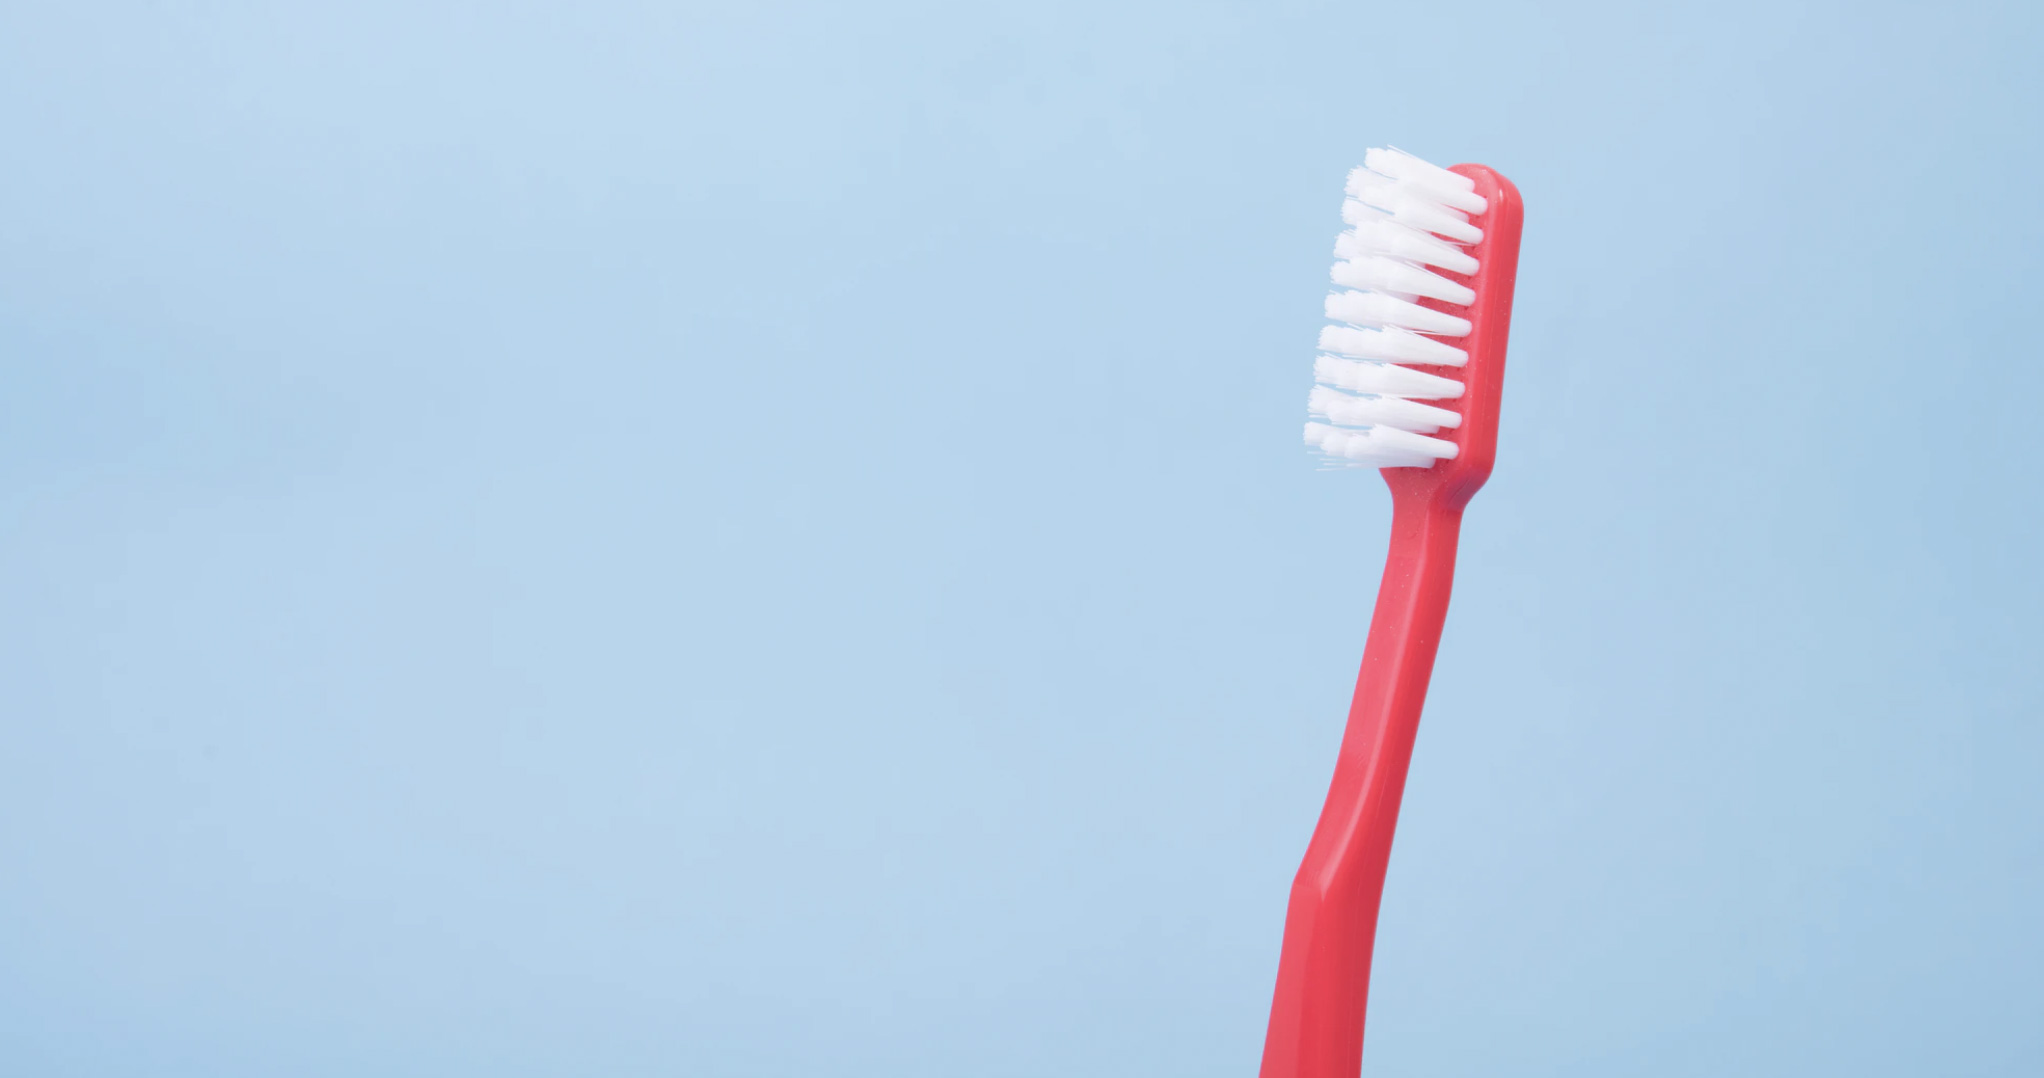 A toothbrush to depict the daily activities that you do mindlessly